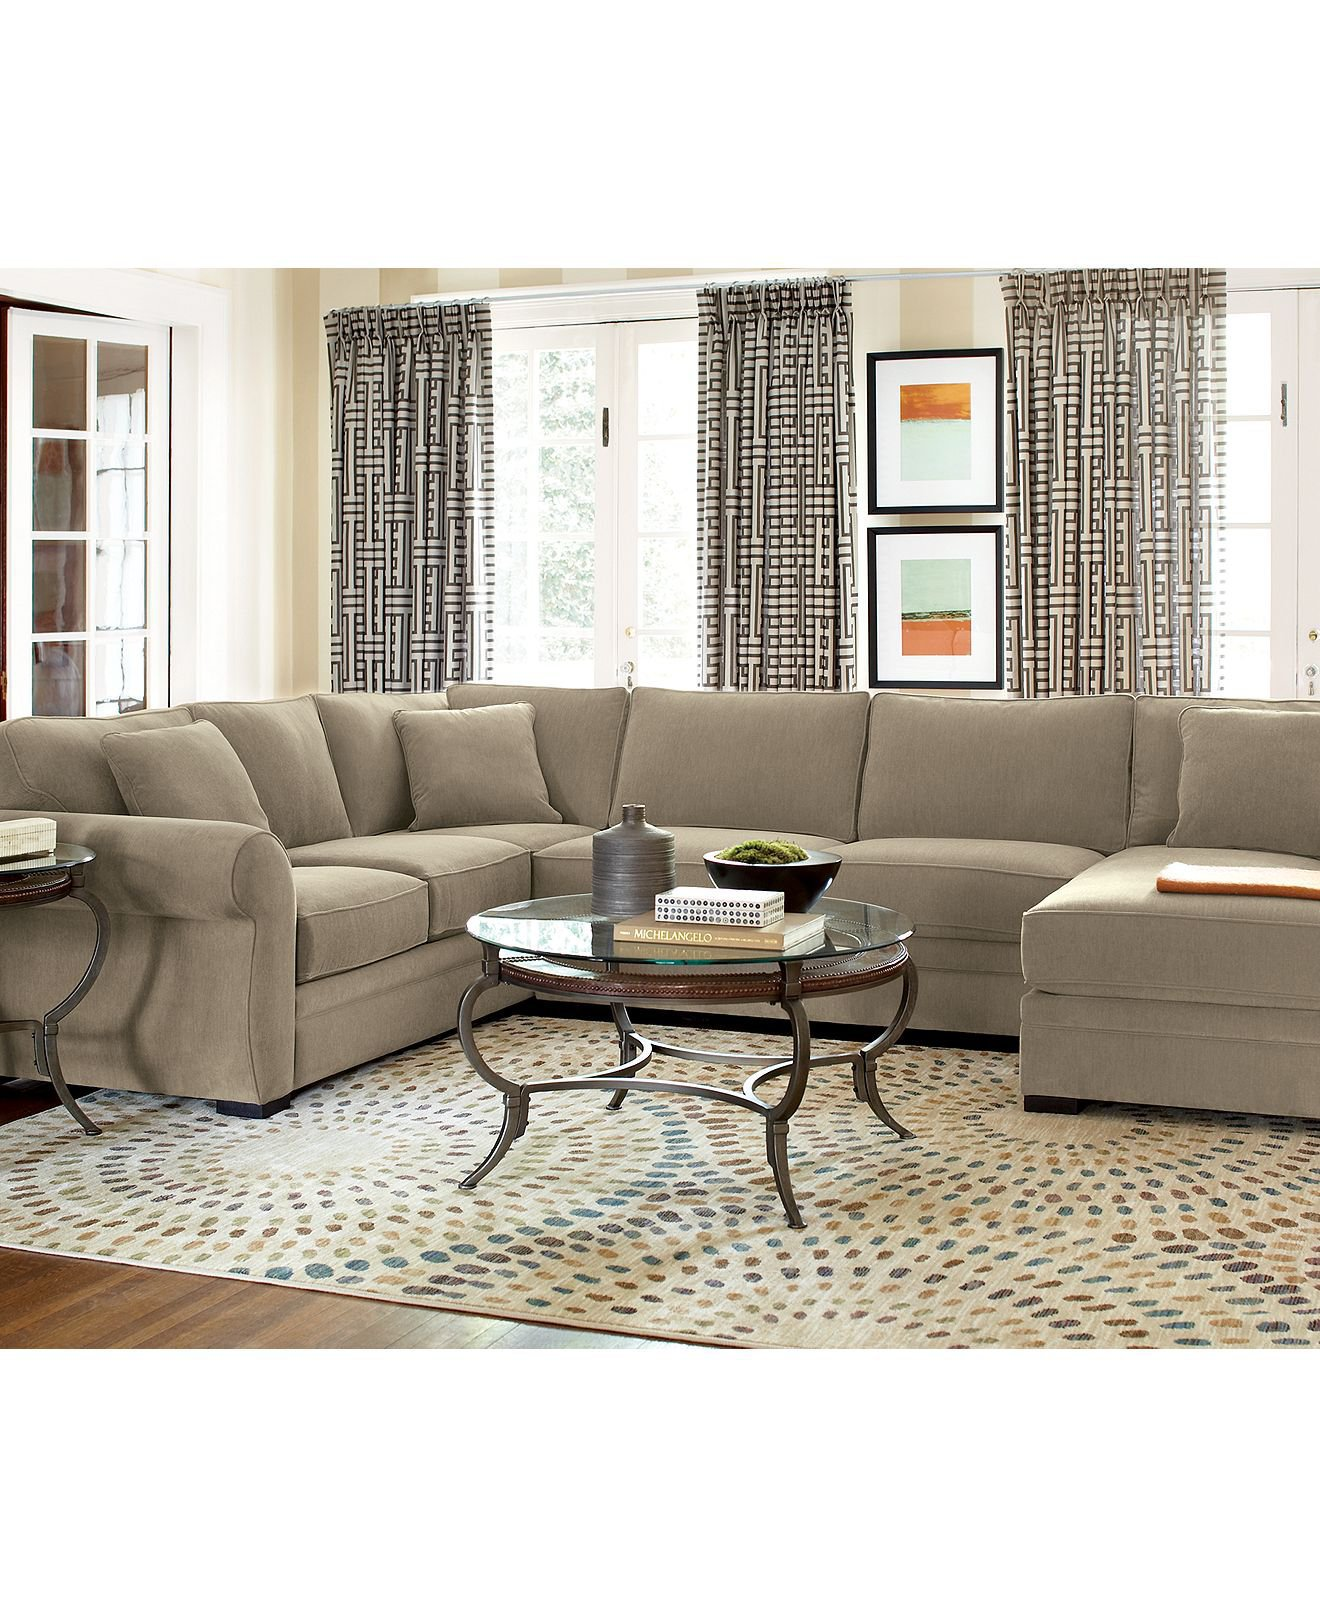 devon living room furniture sets from macy 39 s the house